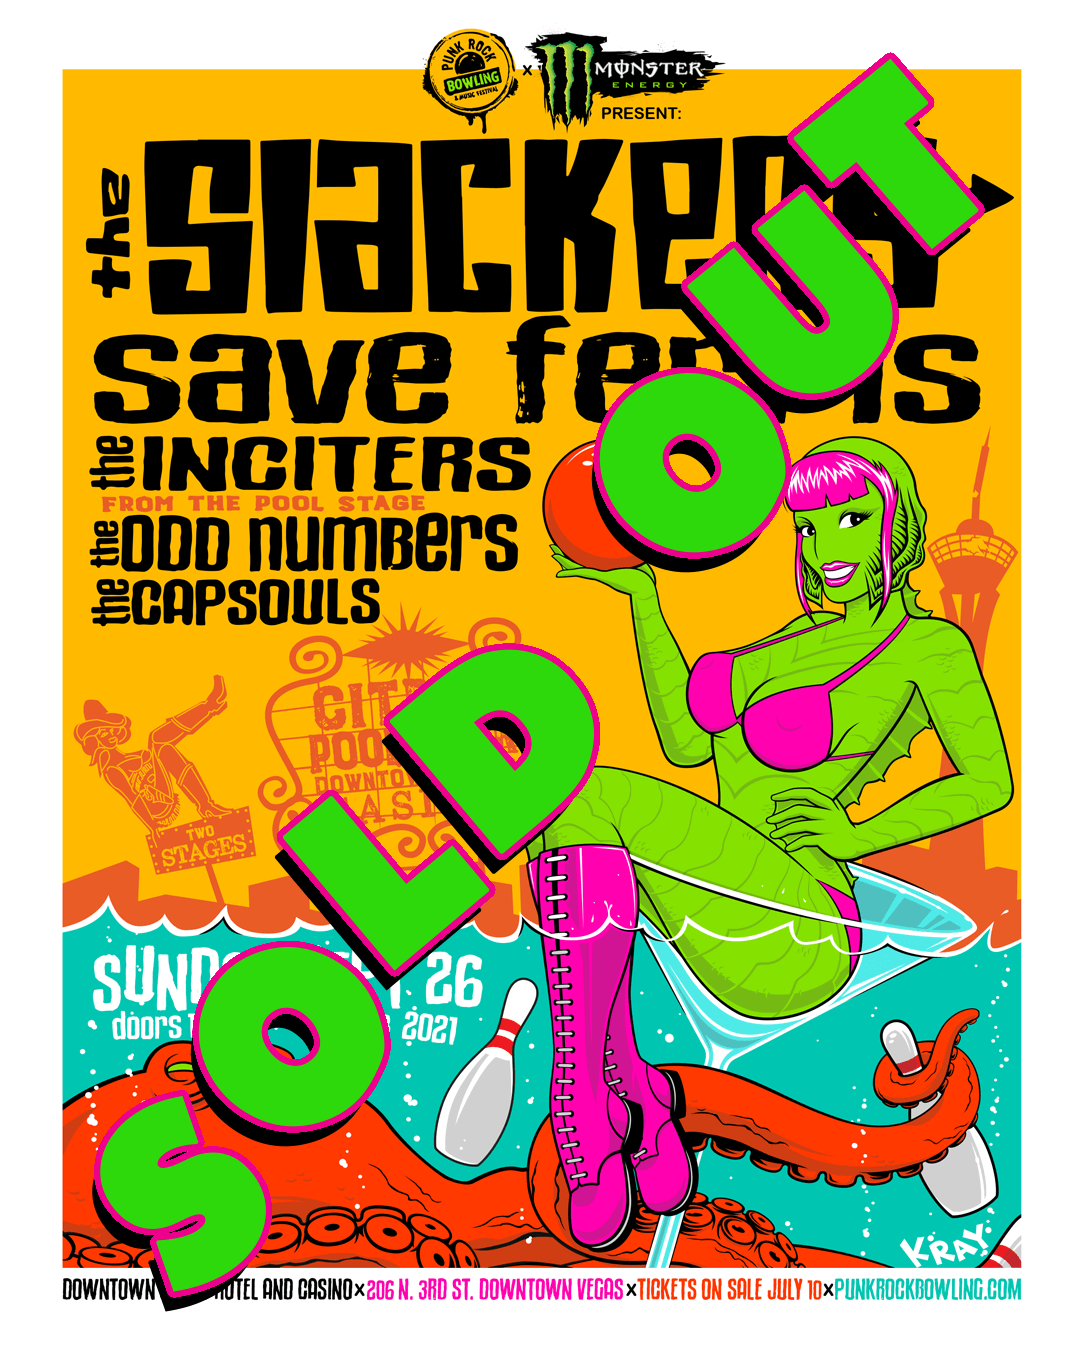 The Slackers Save Ferris The Inciters The Odd Numbers Punk Rock Bowling 2021 After Party Downtown Las Vegas Sold Out